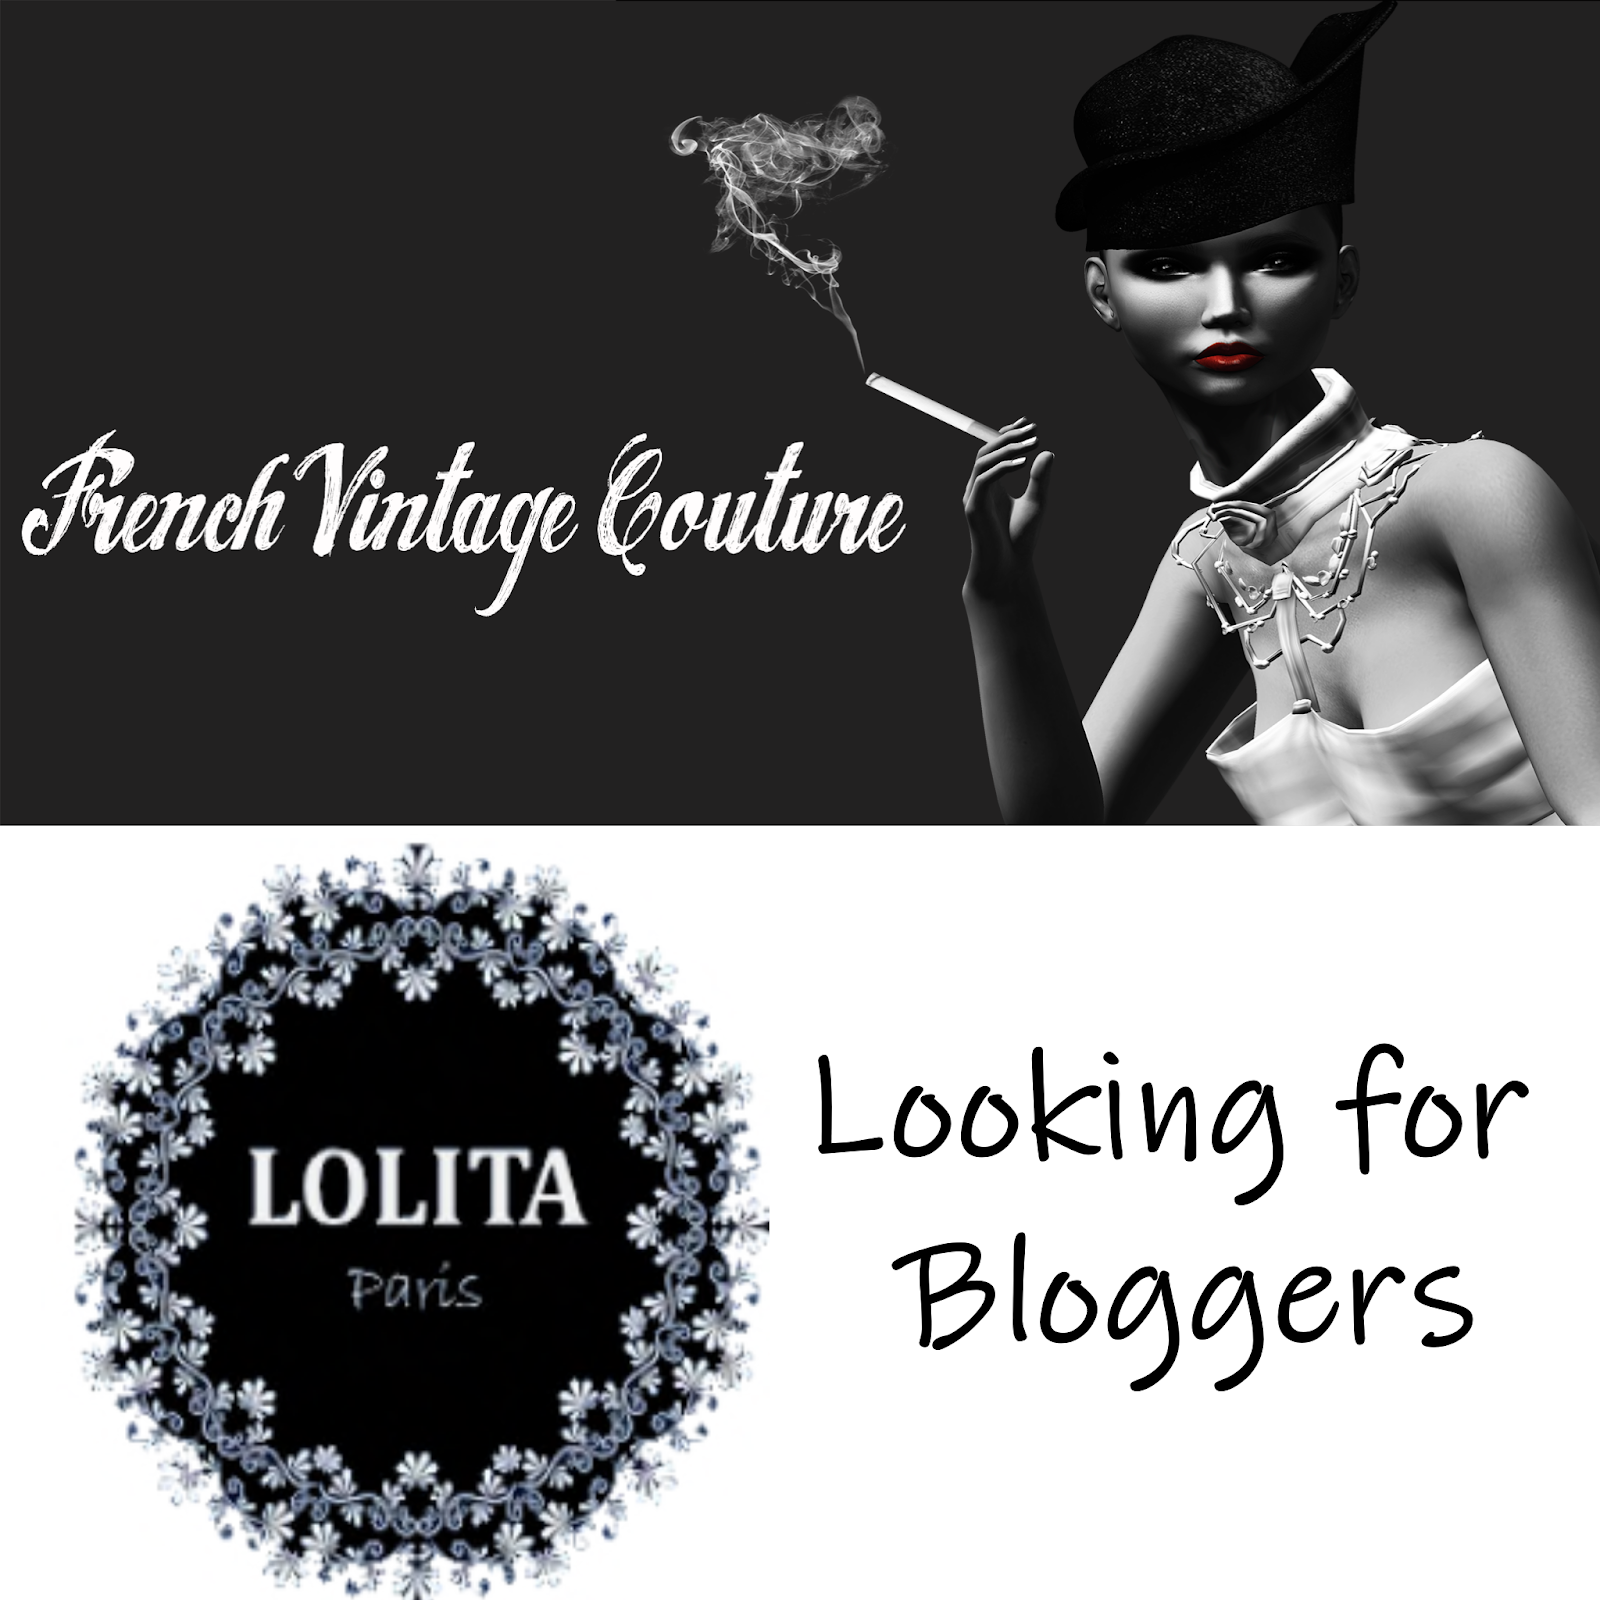 Lolita Paris & French Vintage Couture